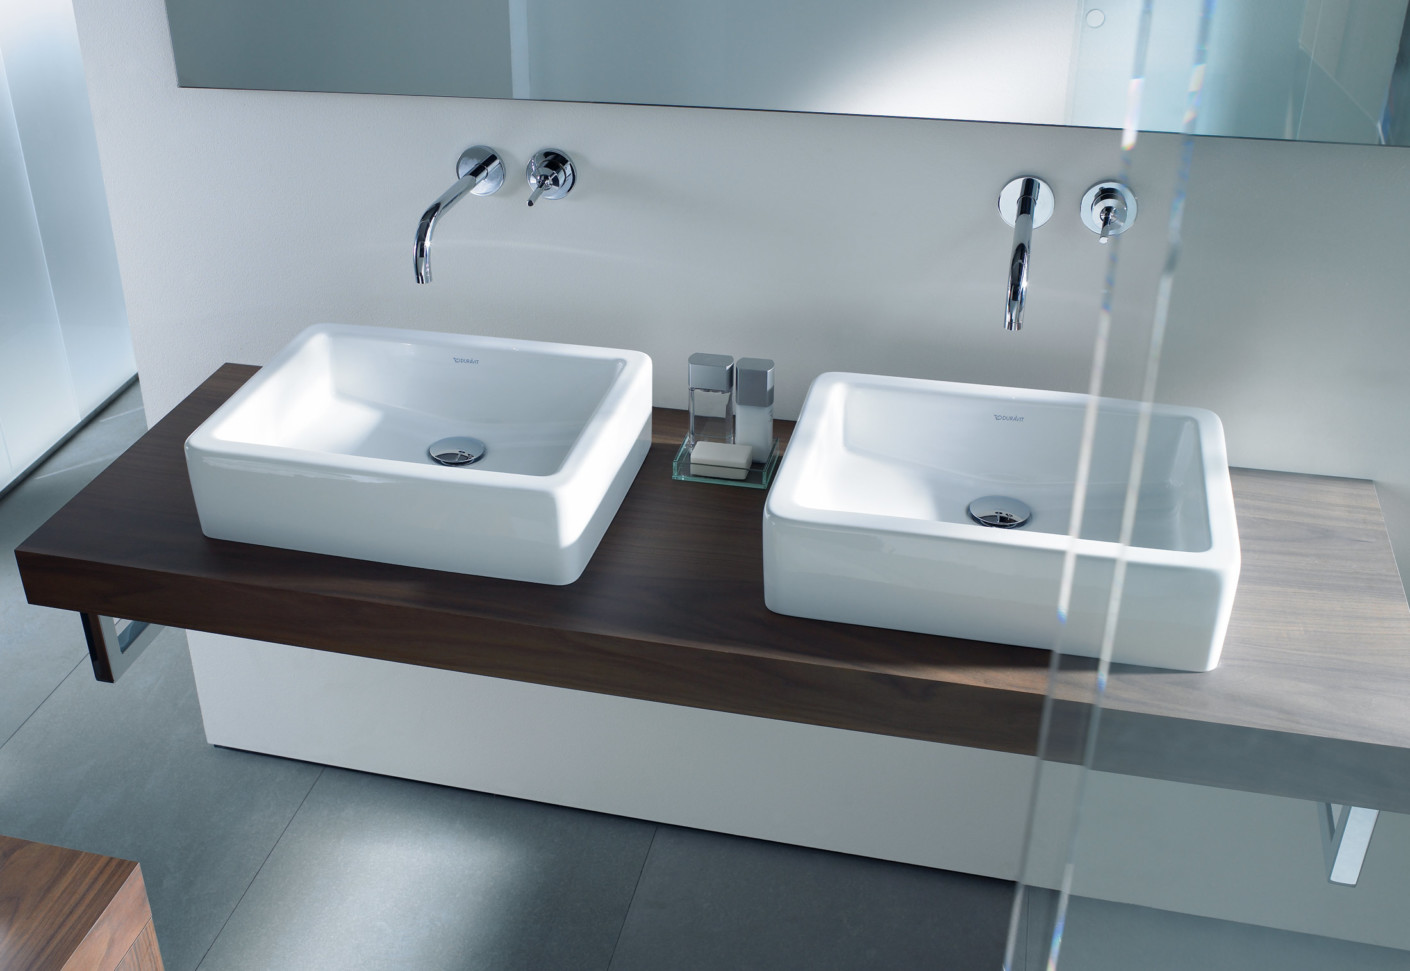 Vero double washbasin by Duravit | STYLEPARK